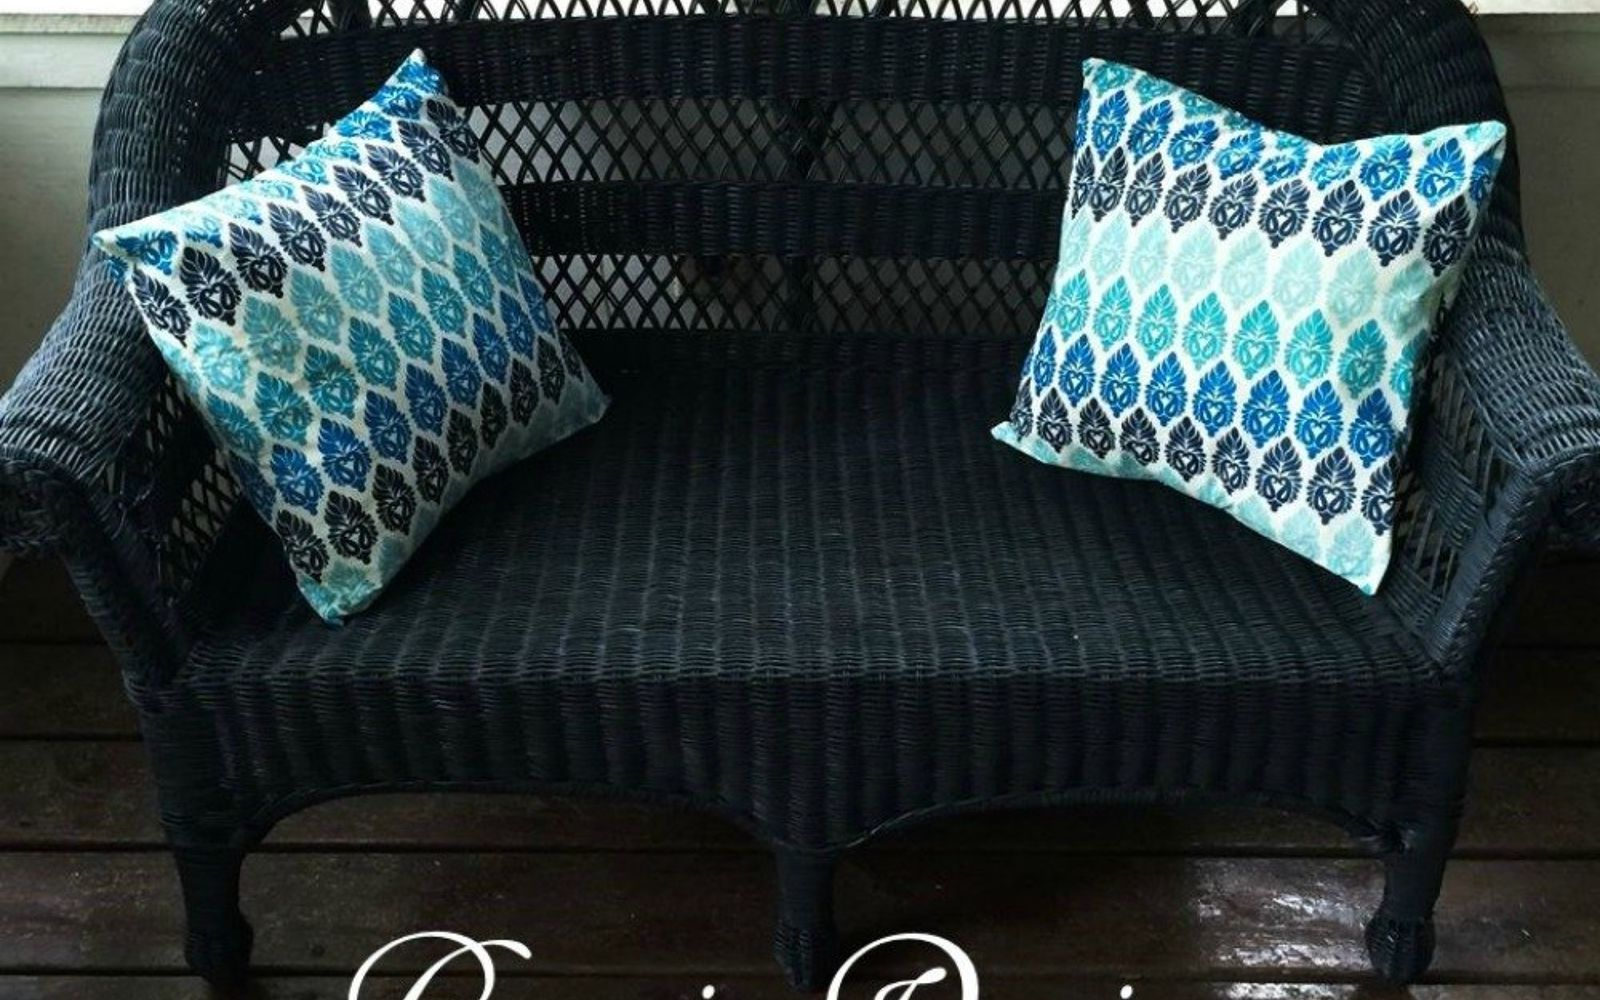 s 9 genius decorating hacks using tablecloths, repurposing upcycling, Use a plastic tablecloth for patio pillows